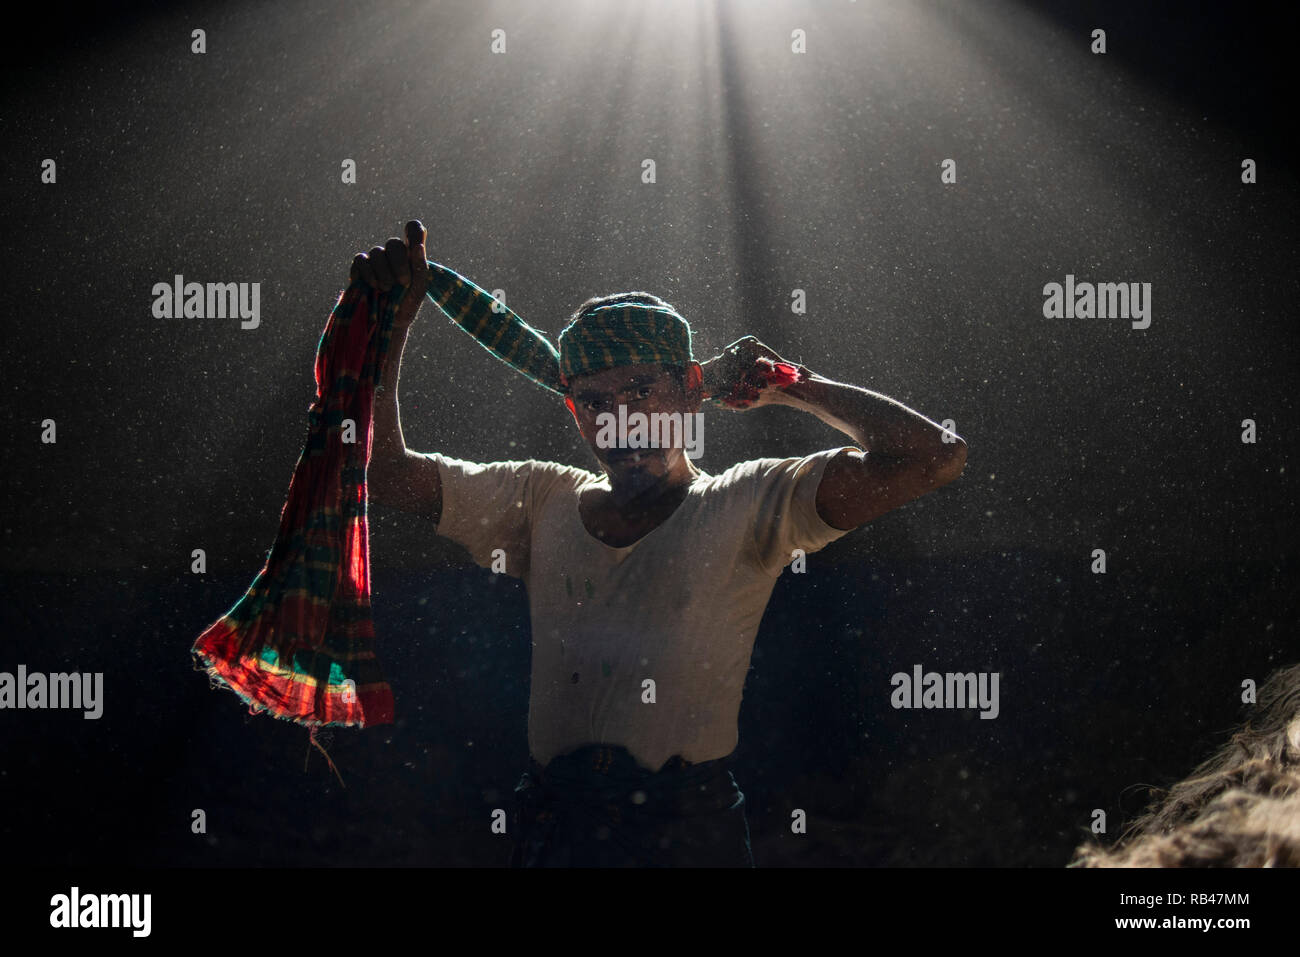 Narayanganj, Bangladesh. 6th Jan 2019. Gulzar Hossain a jute mill worker, seen putting his towel upon his head at the mill plant. Bangladesh is known for its Jute. In recent years Bangladesh and many other countries considered jute as a new possibility to replace many daily goods, notably making bags out of jute to replace plastics. Credit: SOPA Images Limited/Alamy Live News Stock Photo